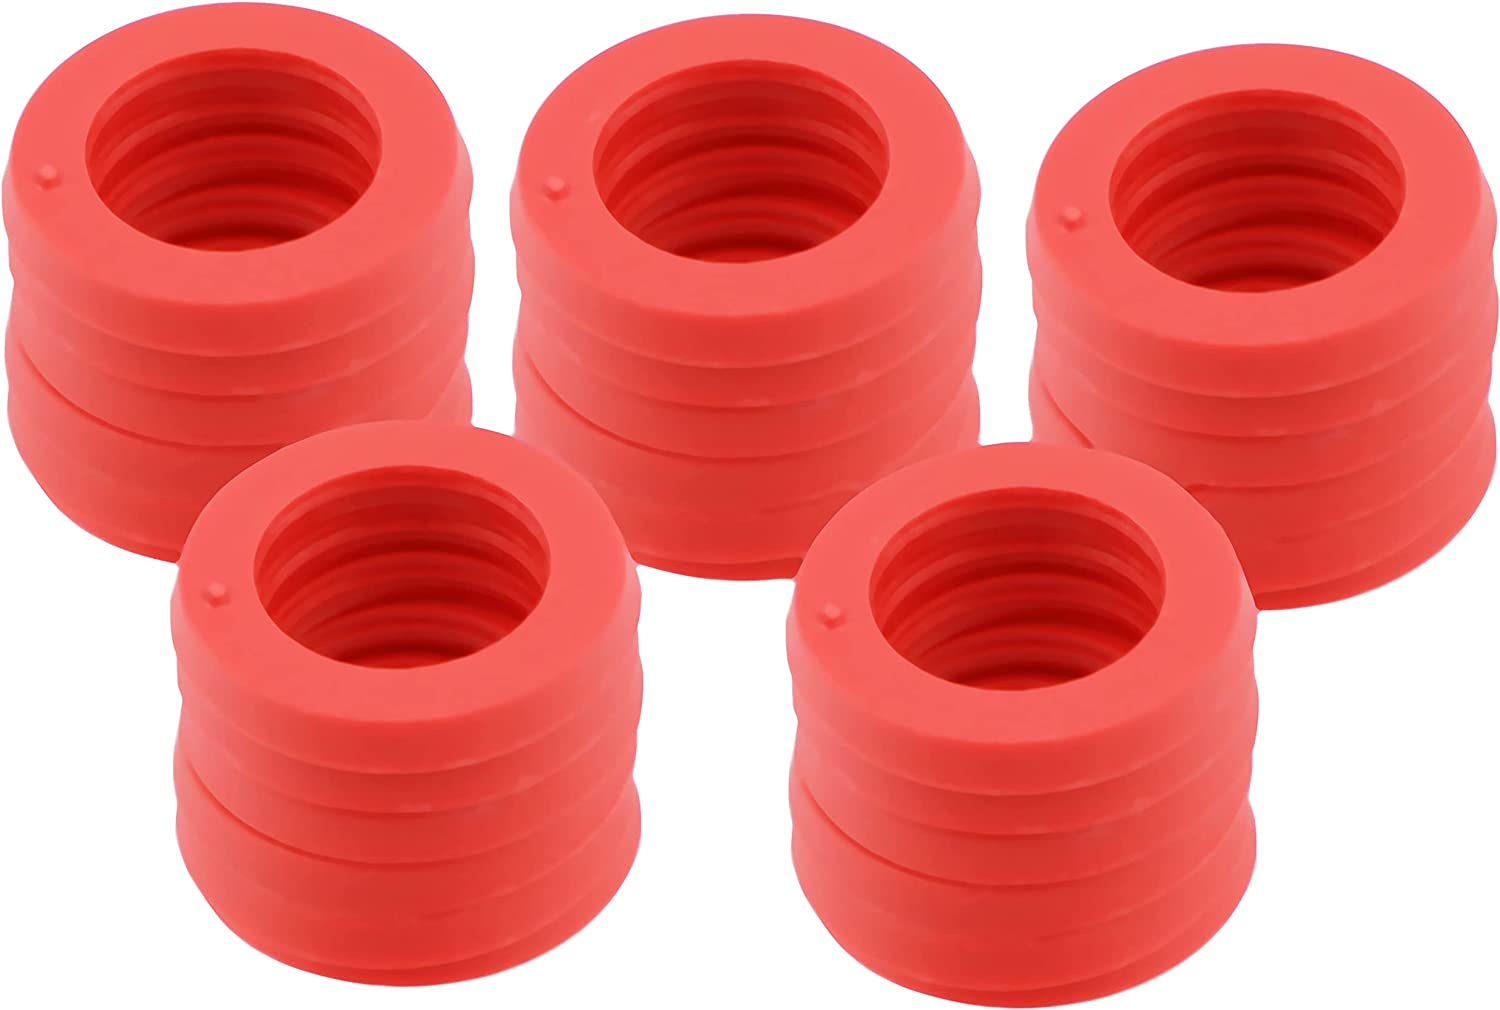 LUTER 30 Packs 3/4 Inch Garden Hose Washers O-Ring Rubber Washers Rubber Washer Seals for Garden Hose Fittings, Water Faucet, Spray Nozzle, Hose Splitter (Red)